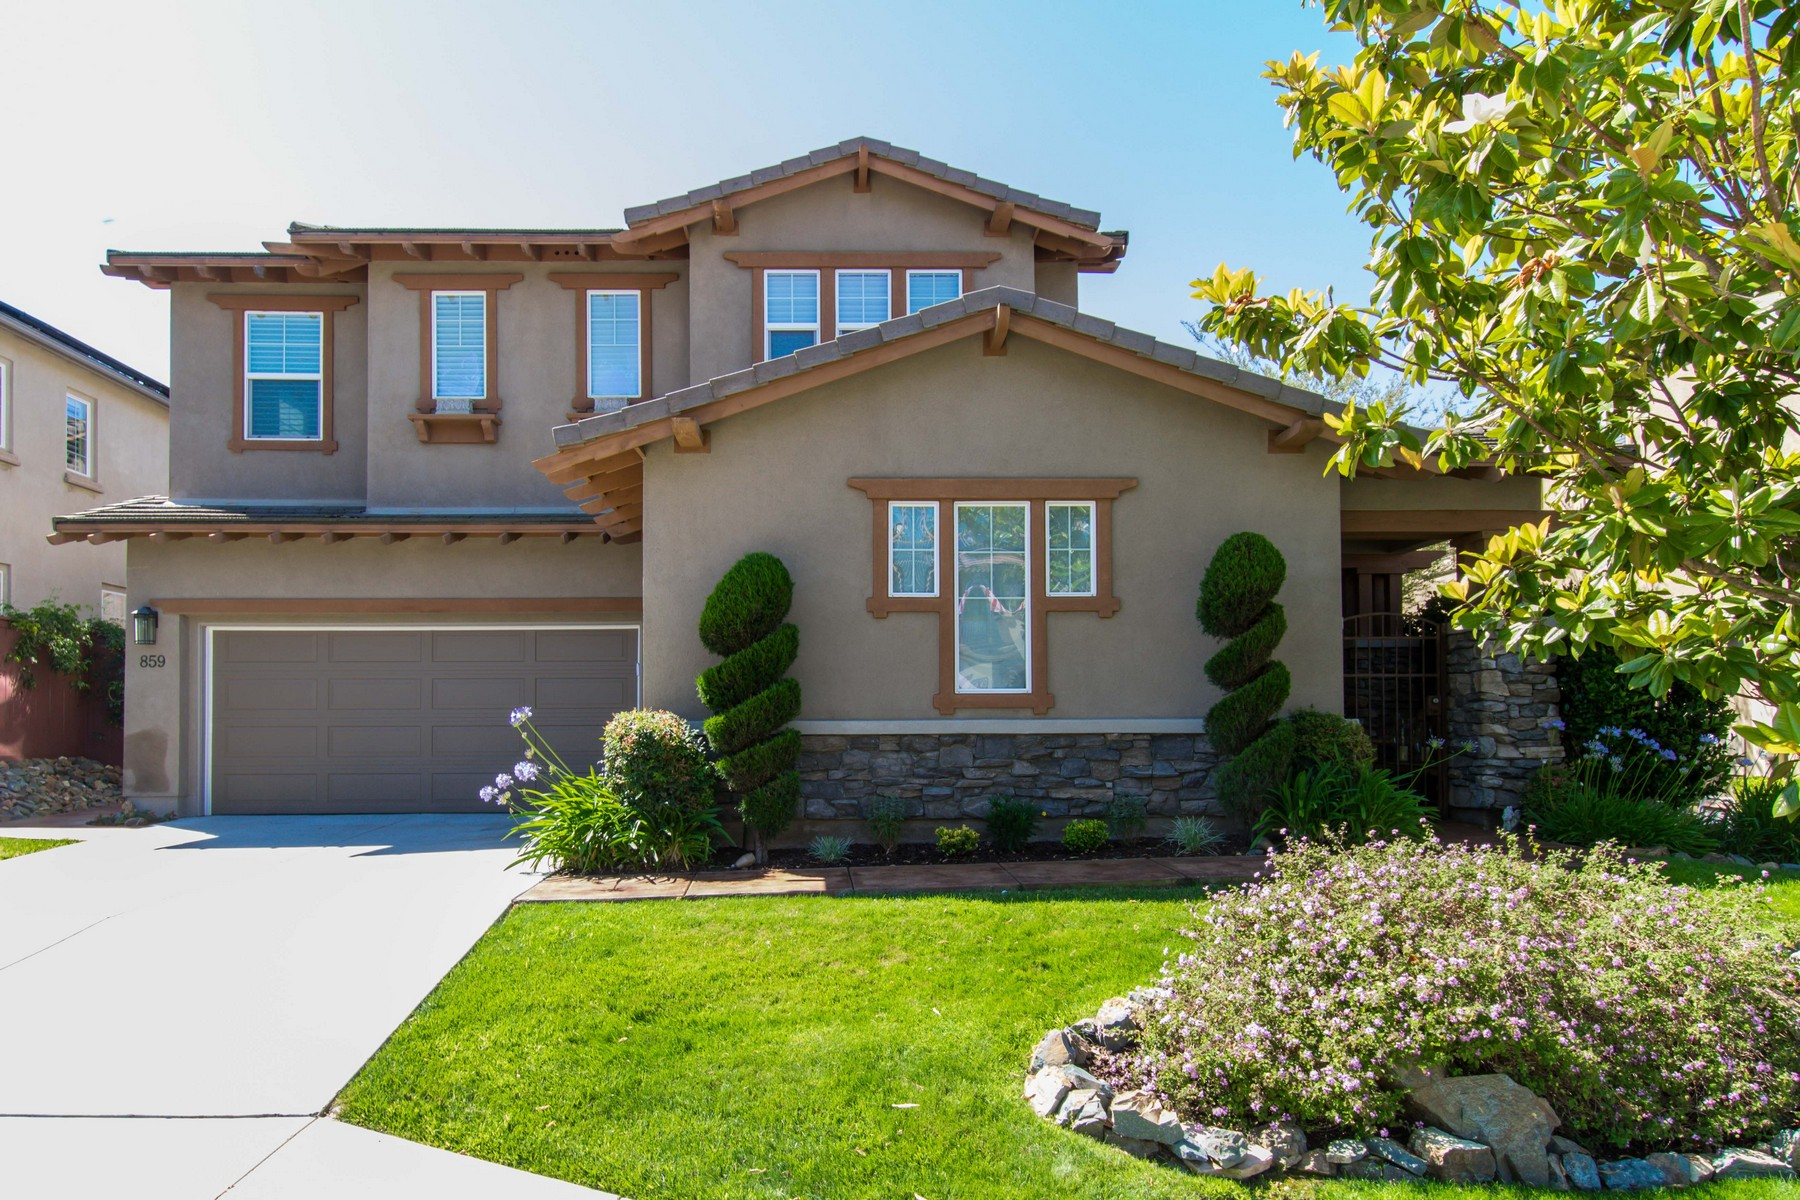 Single Family Home for Sale at 859 Antilla Way San Marcos, California 92078 United States